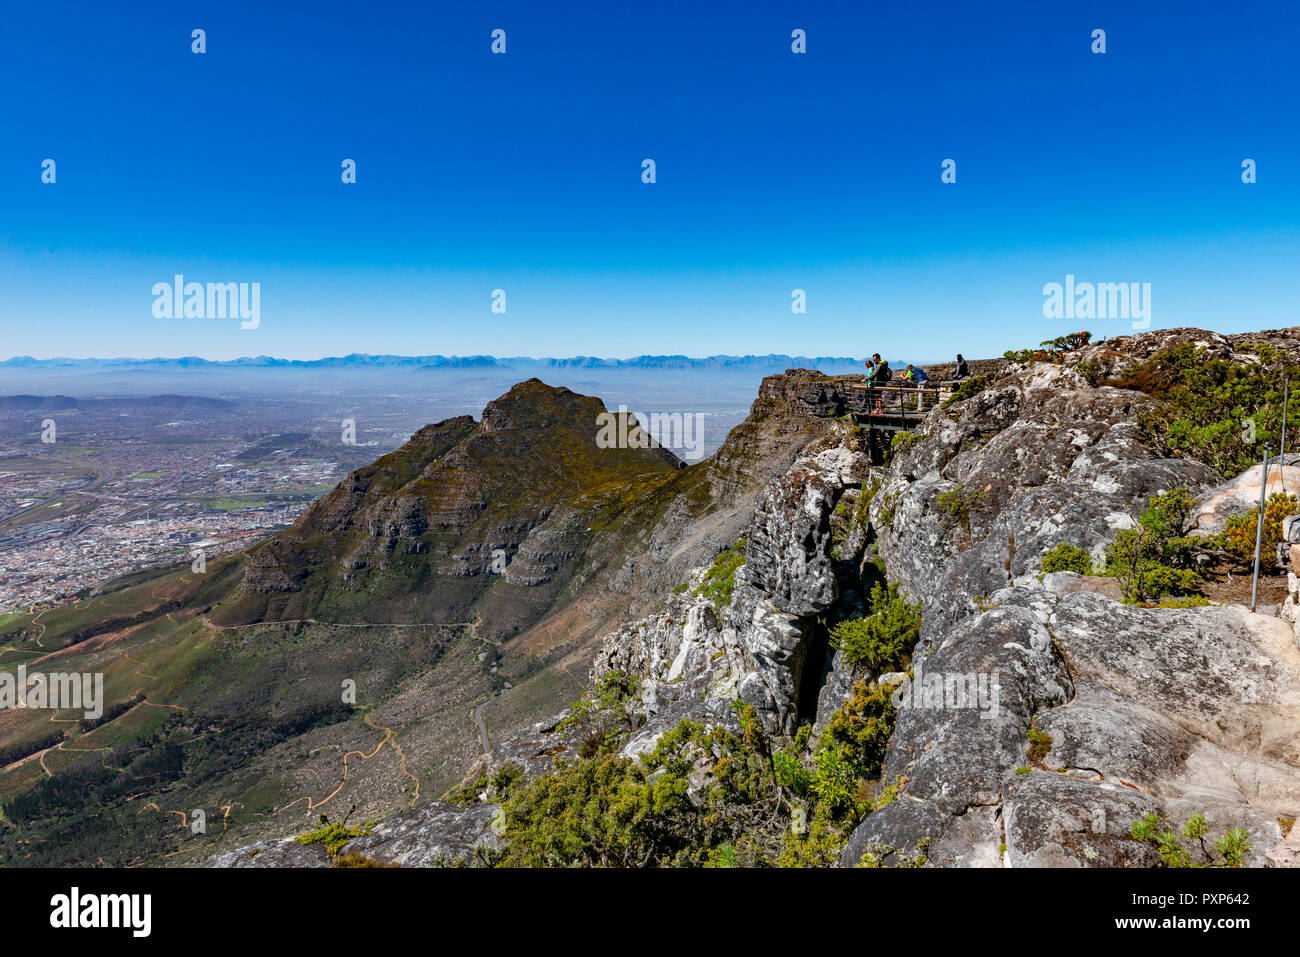 Devils Peak, Table Mountain, Cape Town, South Africa - Stock Image